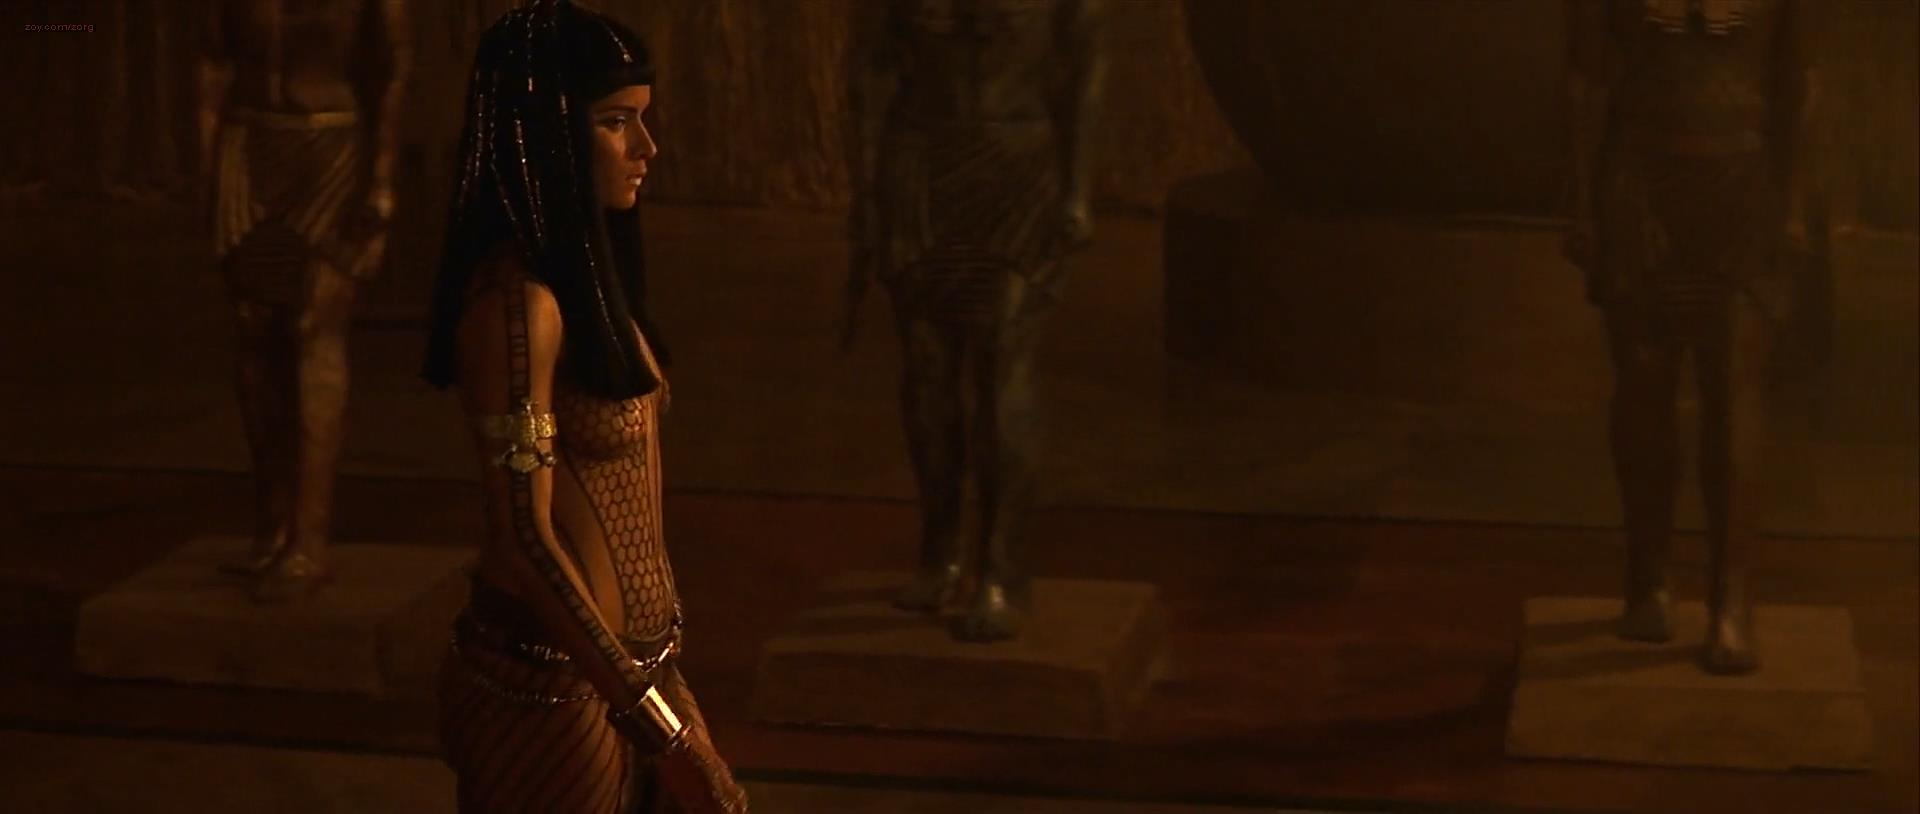 Mummy Movie Images: Sofia Boutella s Monstrous Makeover Collider Pictures from the mummy